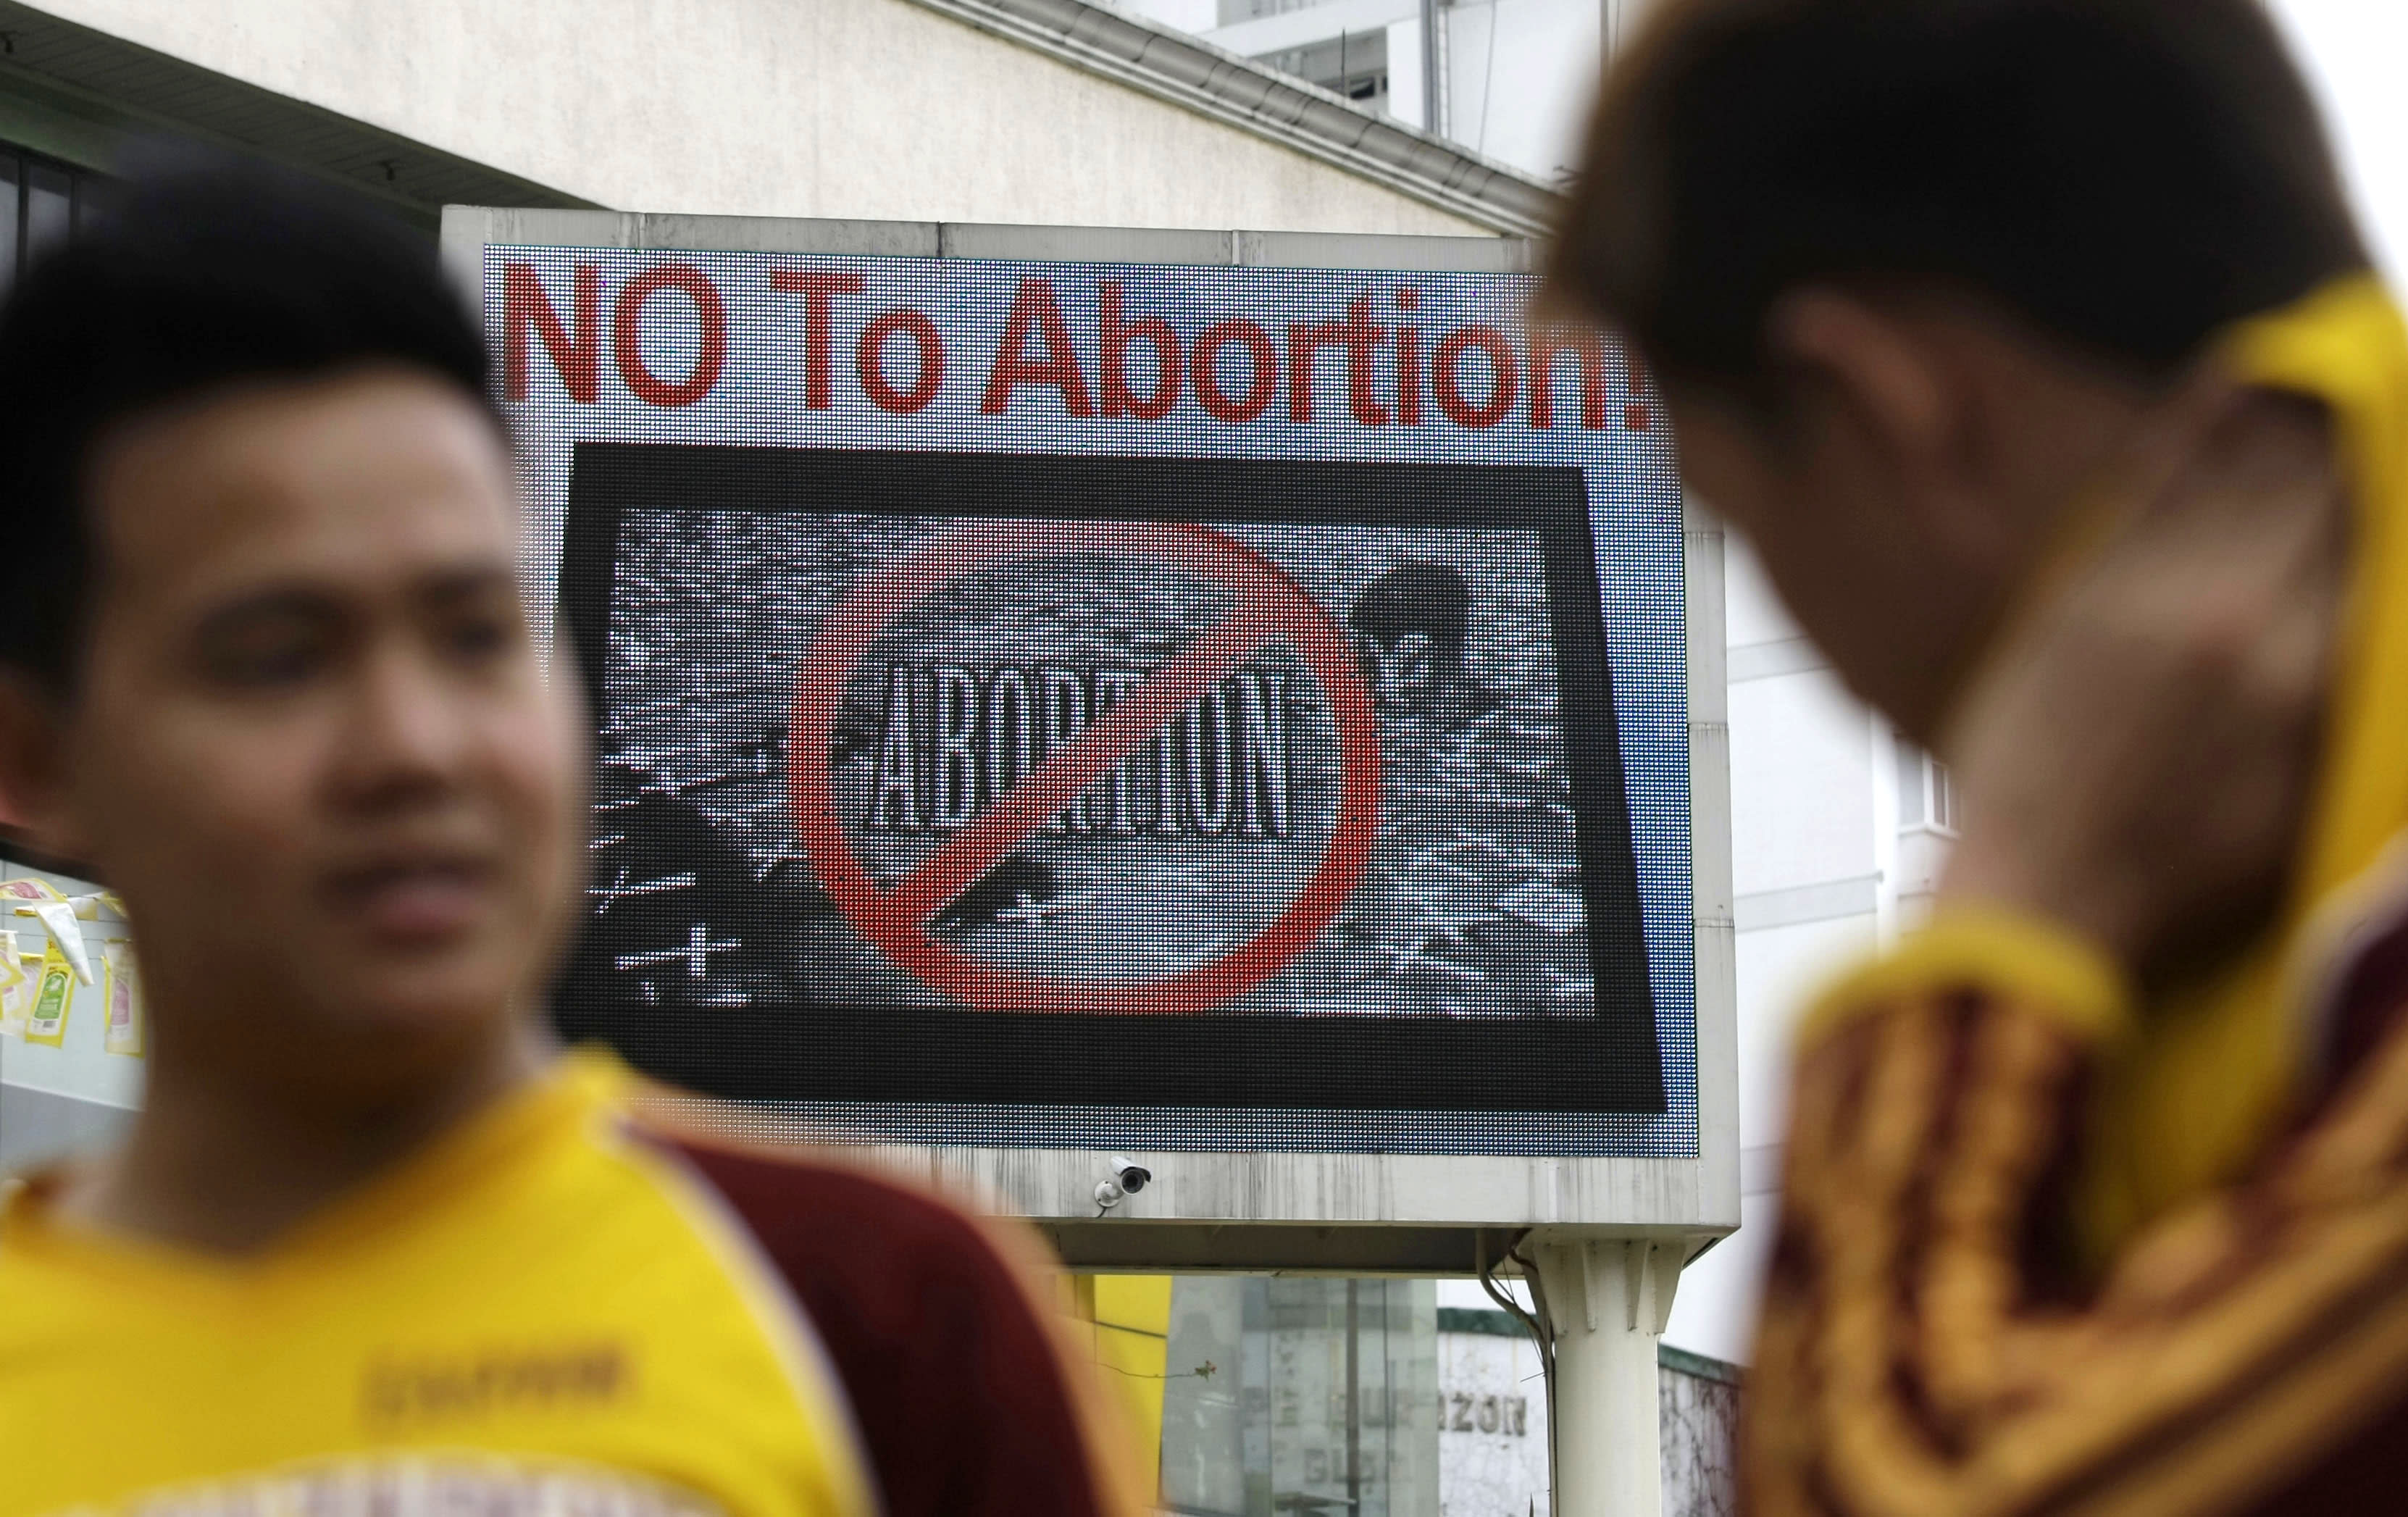 An anti-abortion sign flashes on an electric signboard outside the Roman Catholic Minor Basilica of the Black Nazarene in downtown Manila, Philippines on Thursday, Jan. 3, 2013. Philippine President Benigno Aquino III last month signed the Responsible Parenthood and Reproductive Health Act of 2012. The law that provides state funding for contraceptives for the poor pitted the dominant Roman Catholic Church in an epic battle against the popular Aquino and his followers. (AP Photo/Aaron Favila)